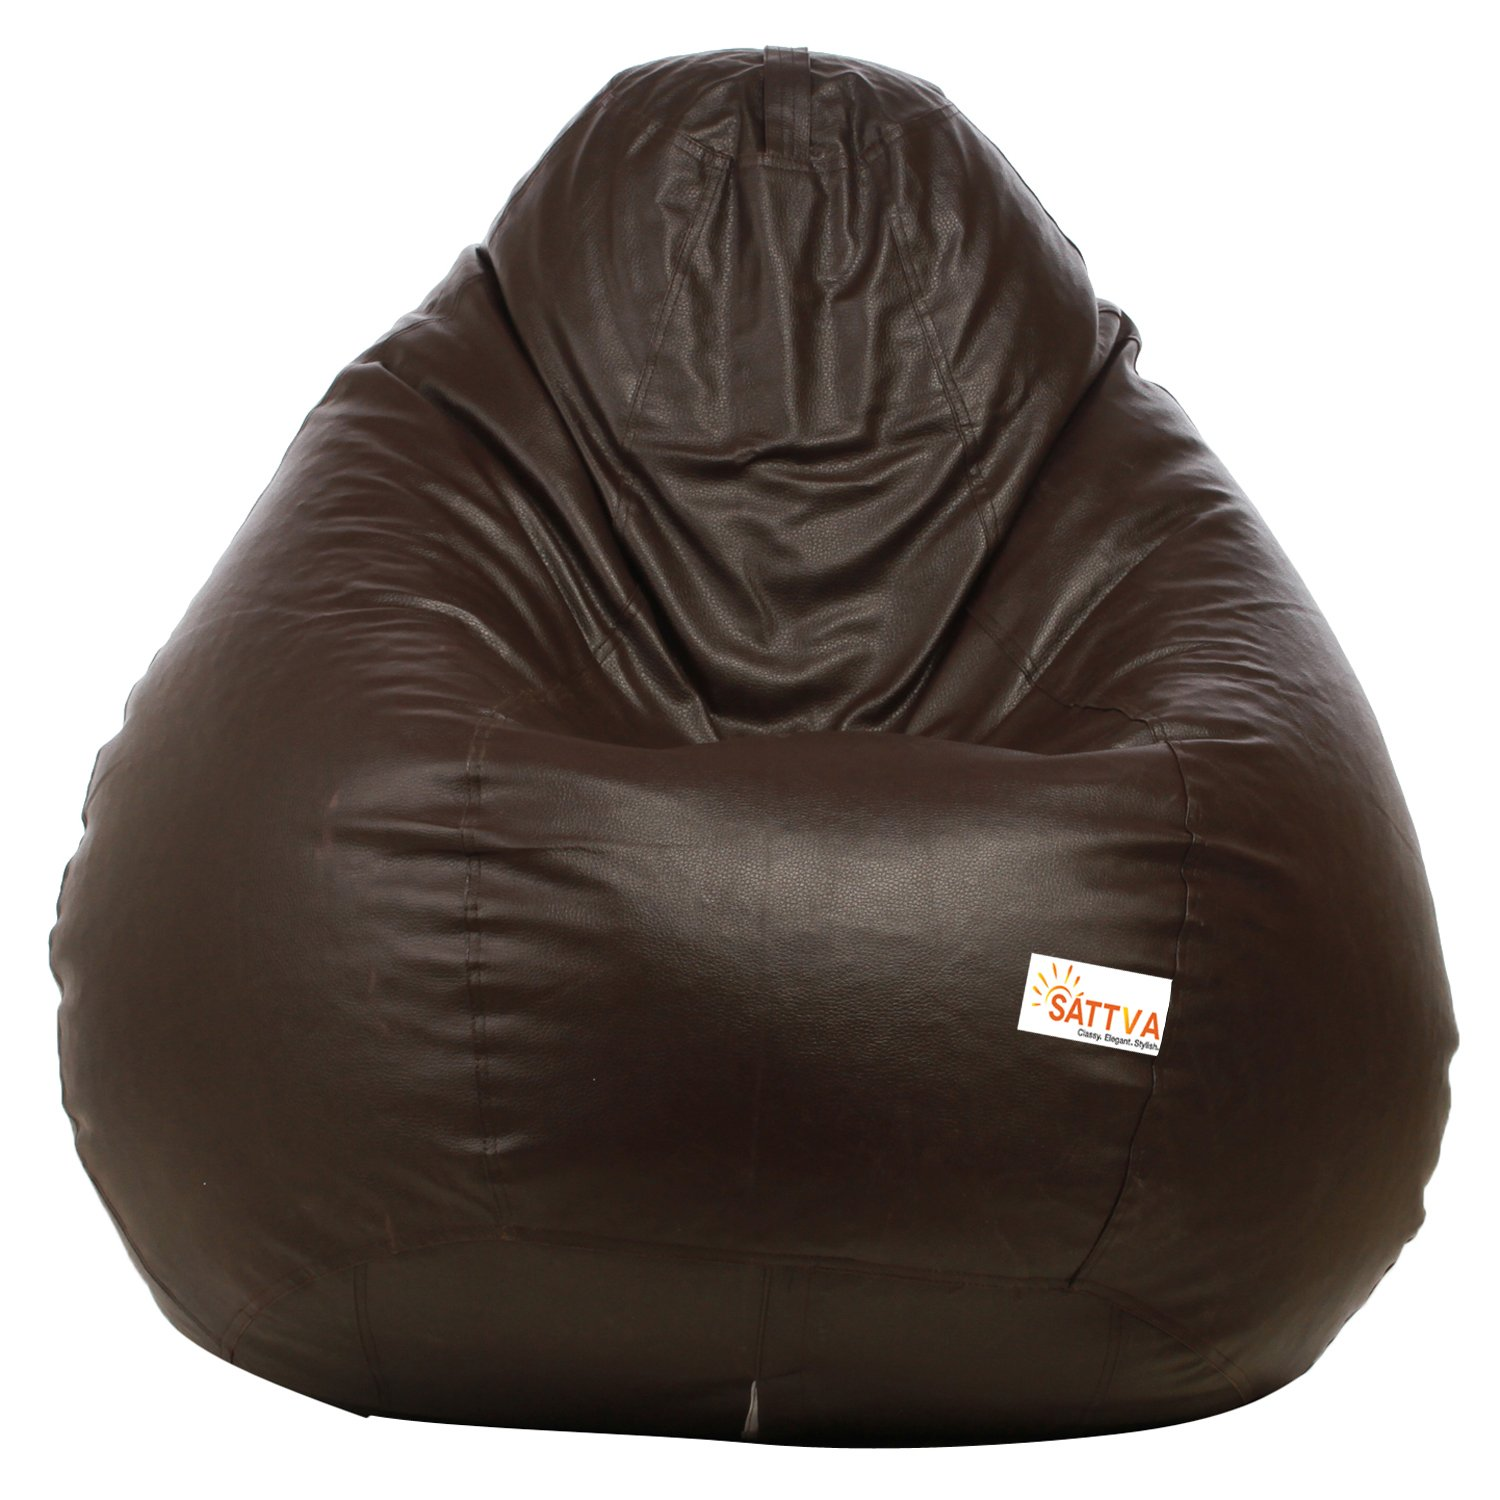 Bean bag without beans